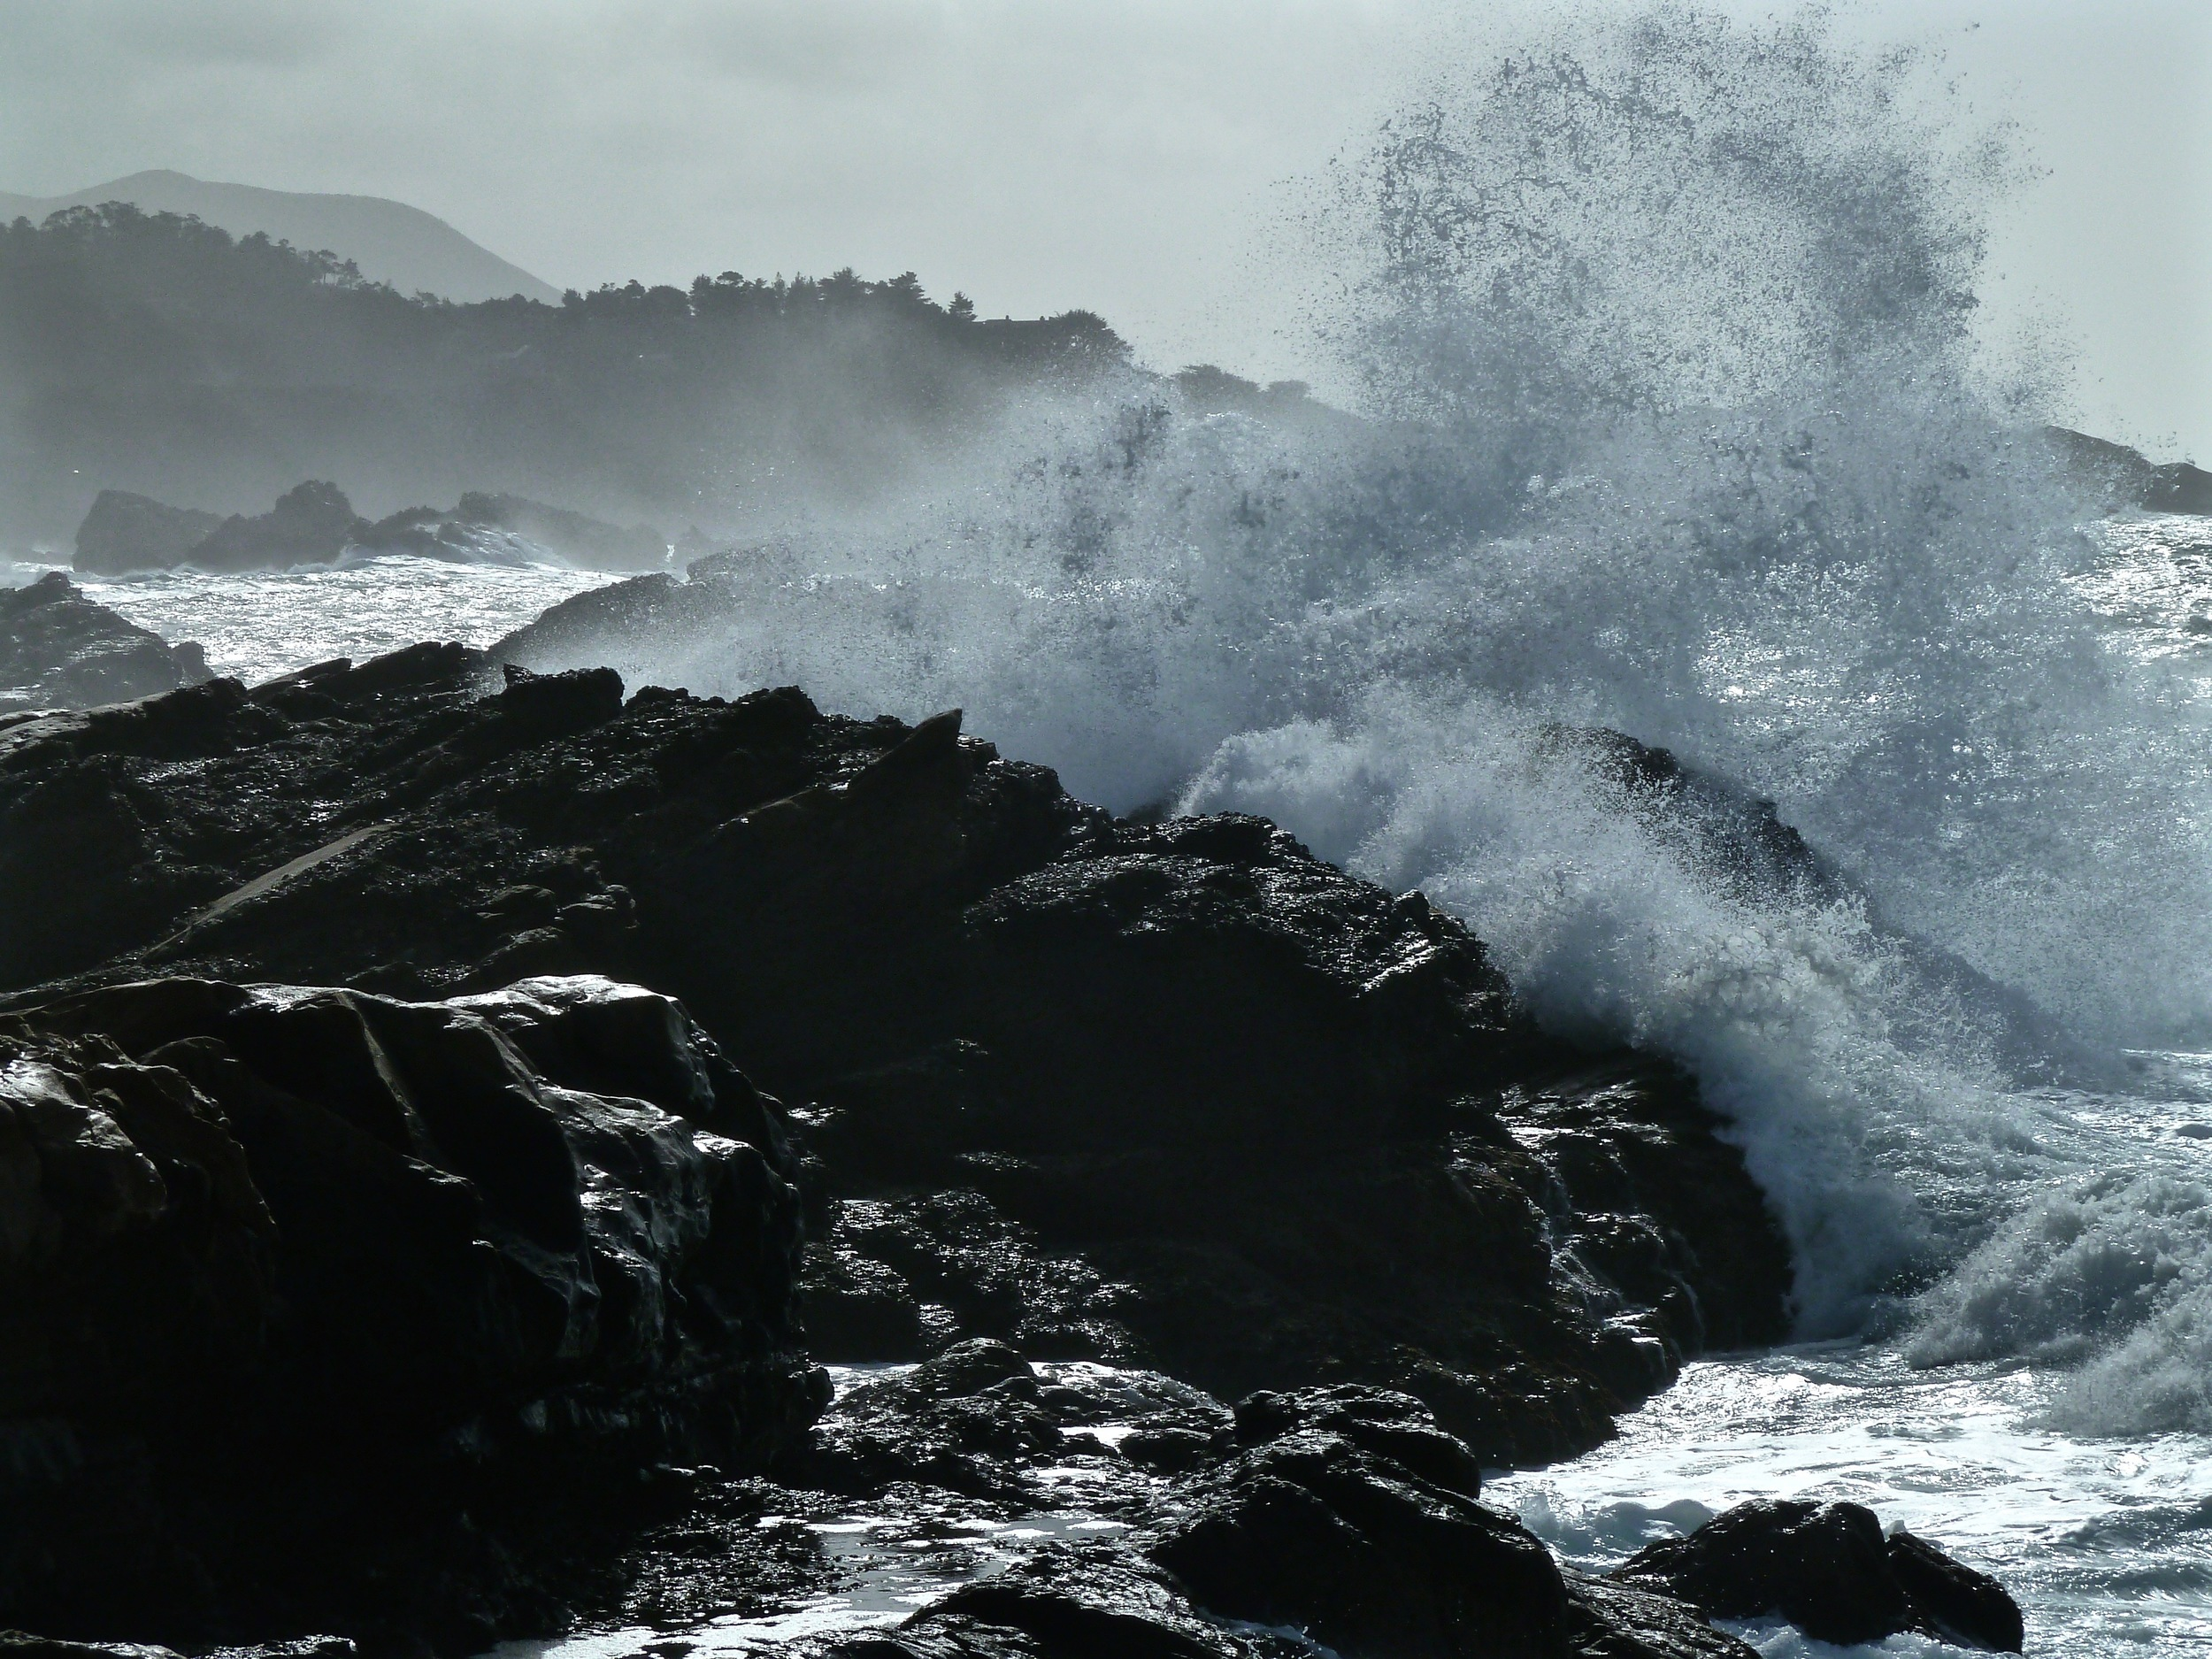 The Pacific Ocean unleashes its fury at Sand Hill Cove, which pits overeager photographers against lethal plumes of seawater.